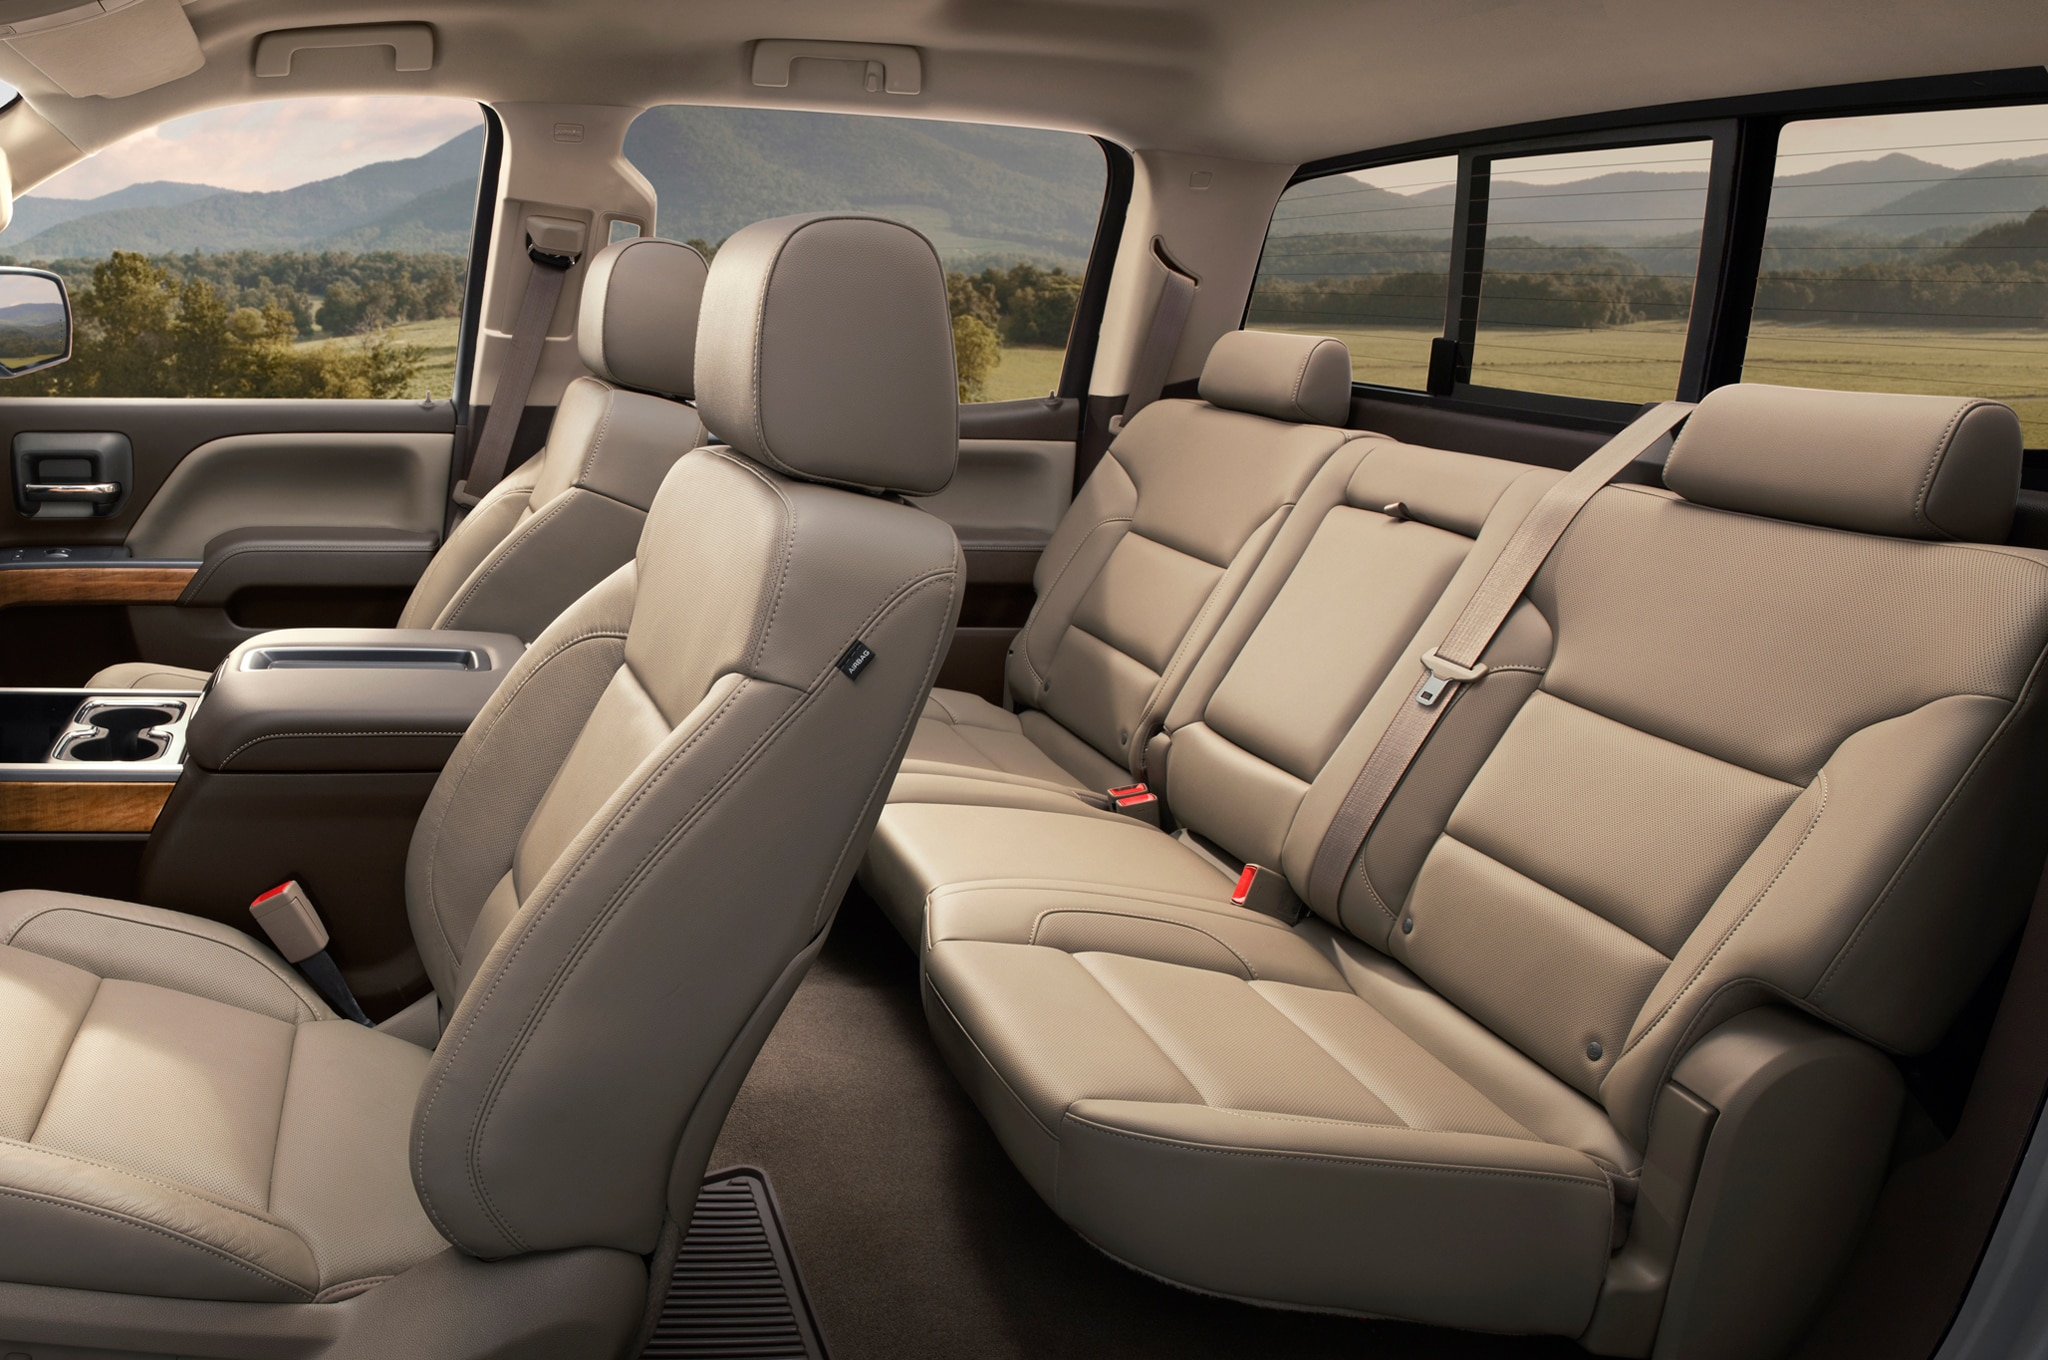 2015 Chevrolet Silverado 2500HD back seats